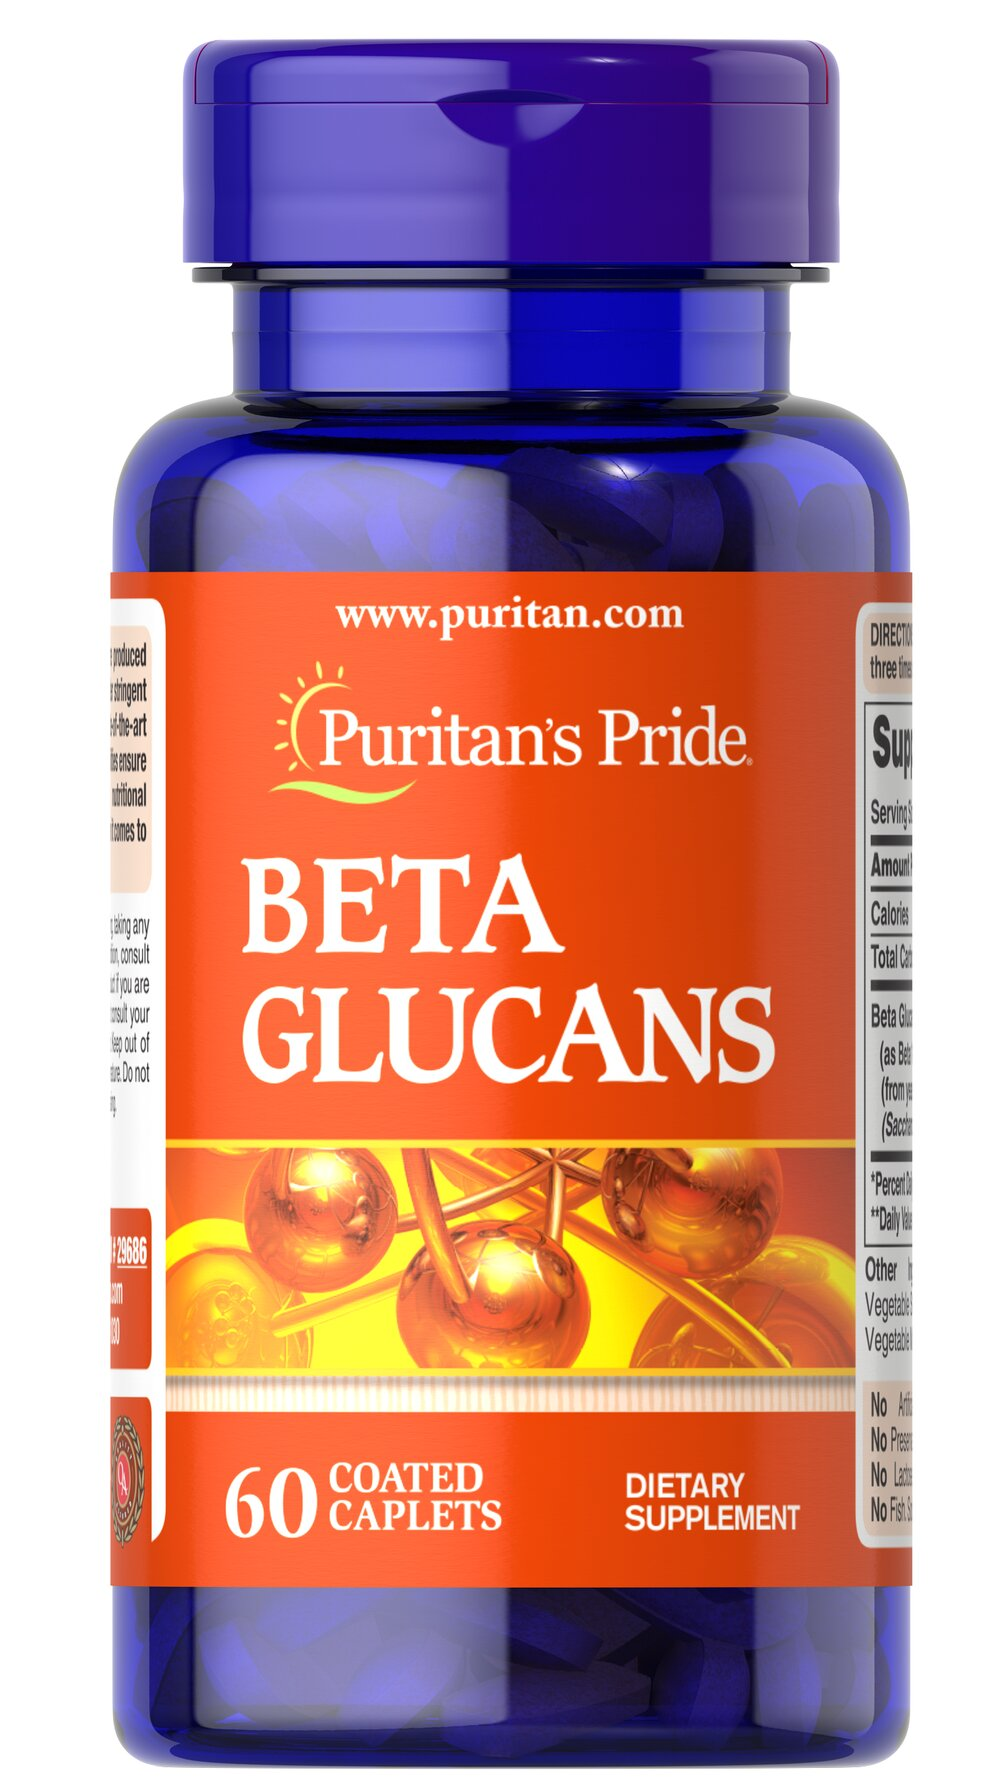 Beta Glucans 200 mg <p>Beta 1,3 Glucans are the major structural components of yeast</p><p>Our Beta 1,3 Glucans are derived from the cell walls of yeast</p><p>Contributes to healthy immune function**</p><p>Contains 200 mg of Beta 1,3 Glucans per tablet</p><p>These tablets are a great choice for vegetarians</p> 60 Tablets 200 mg $22.99